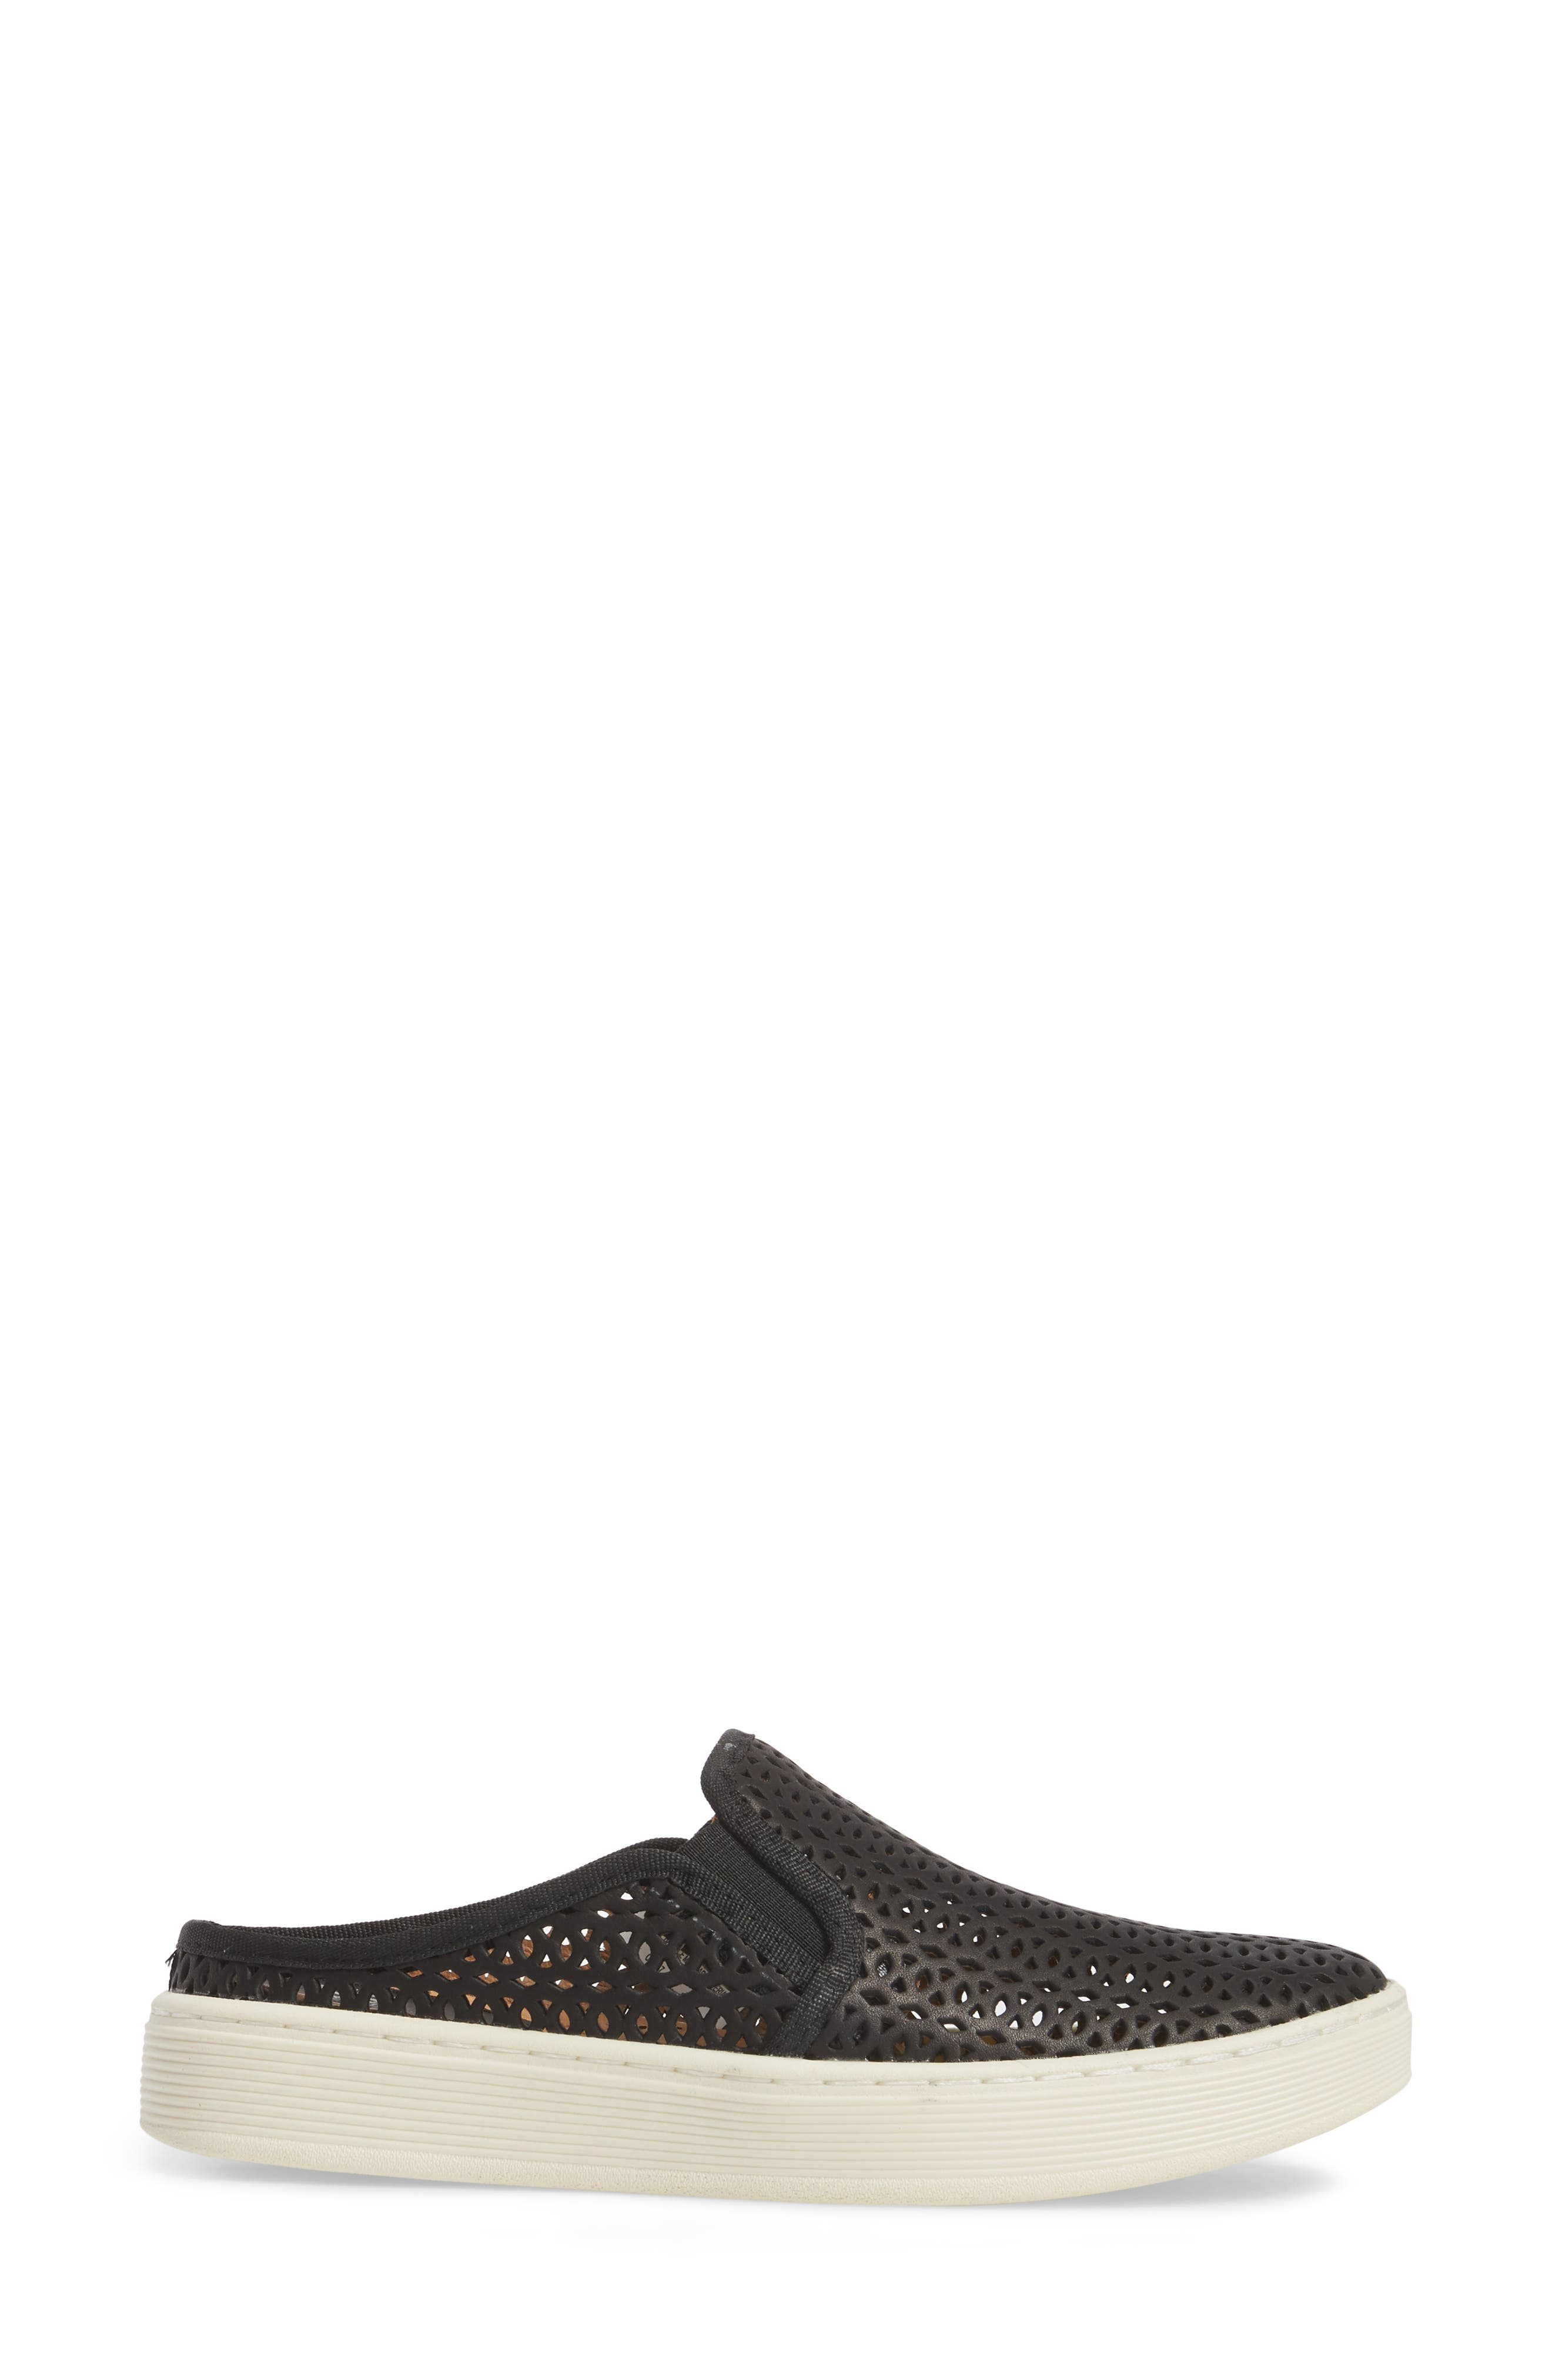 Somers II Sneaker,                             Alternate thumbnail 3, color,                             Black Leather